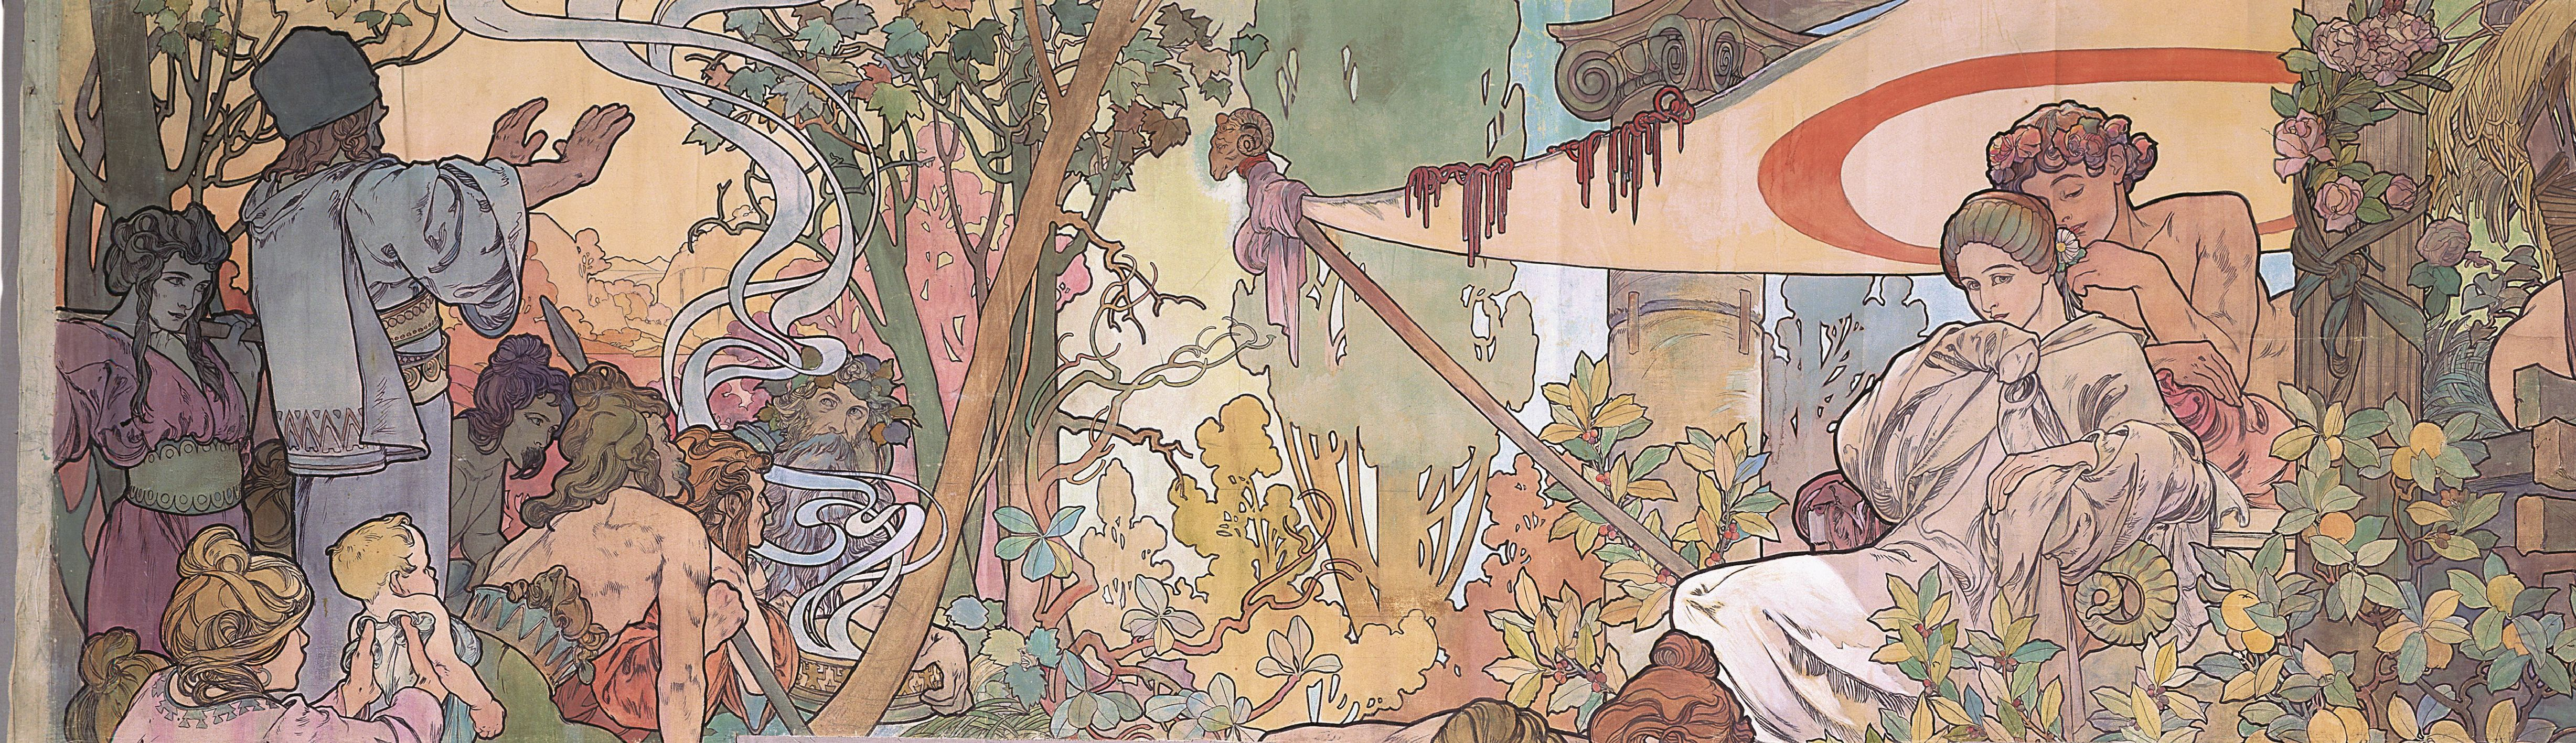 Mucha for the 21st century: Exhibition review